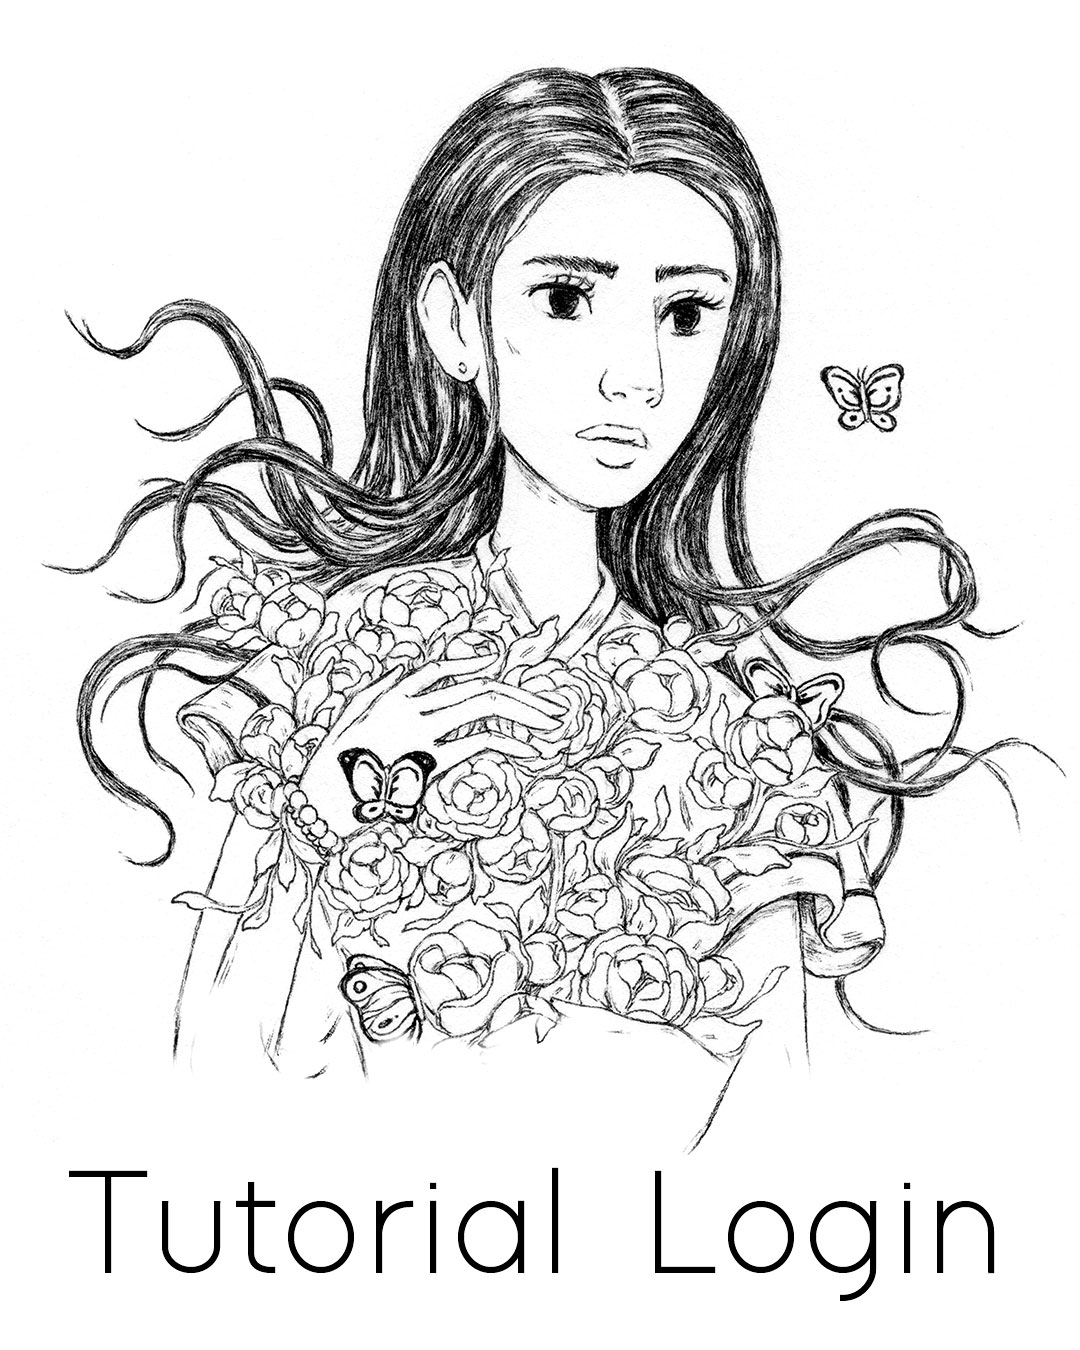 How to Draw Hair Tutorial, Step by Step Process for drawing hairstyles from imagination #tutorial #drawing #hair